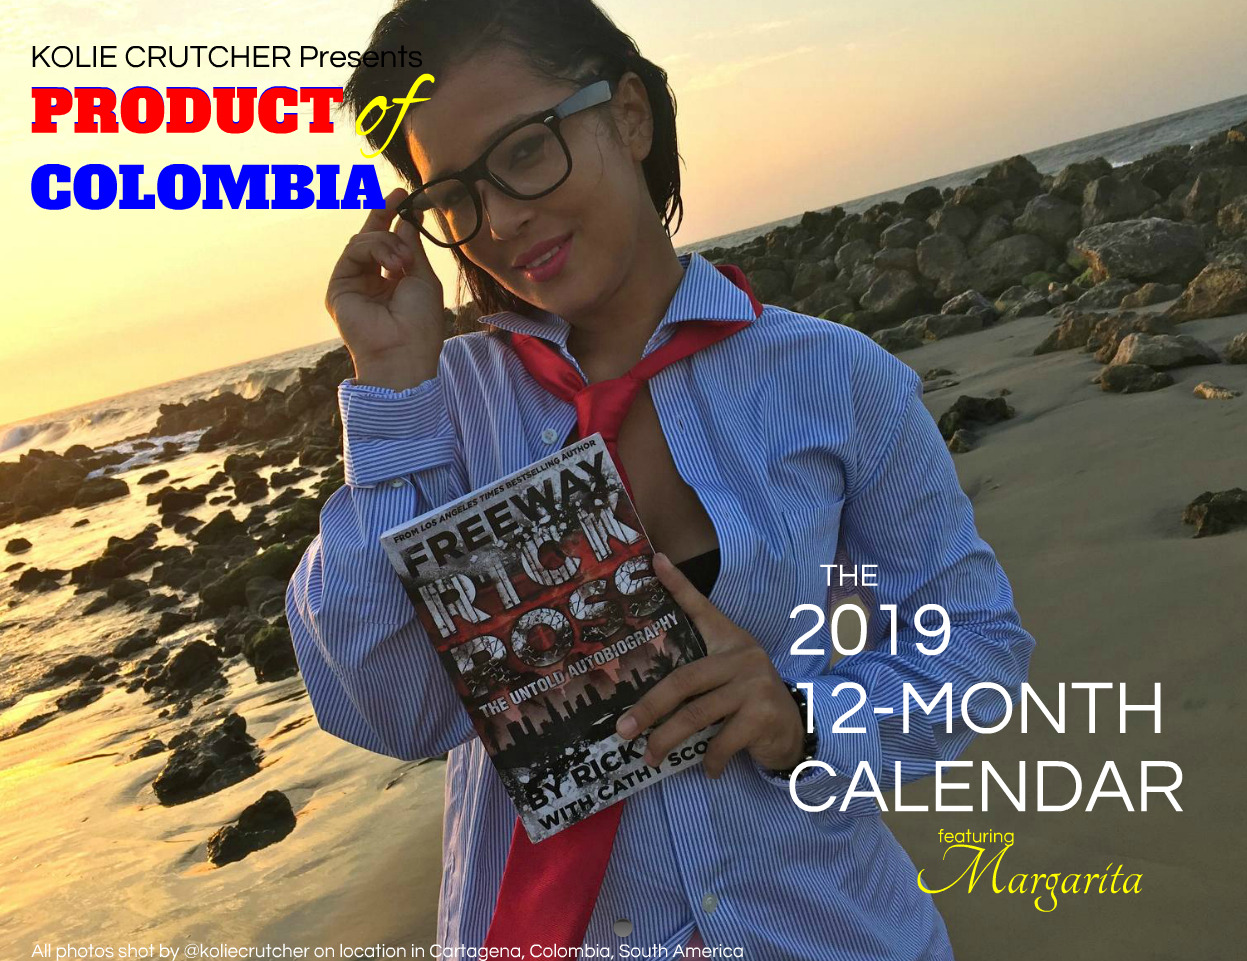 PRODUCT OF COLOMBIA - 2019 12-Month Calendar